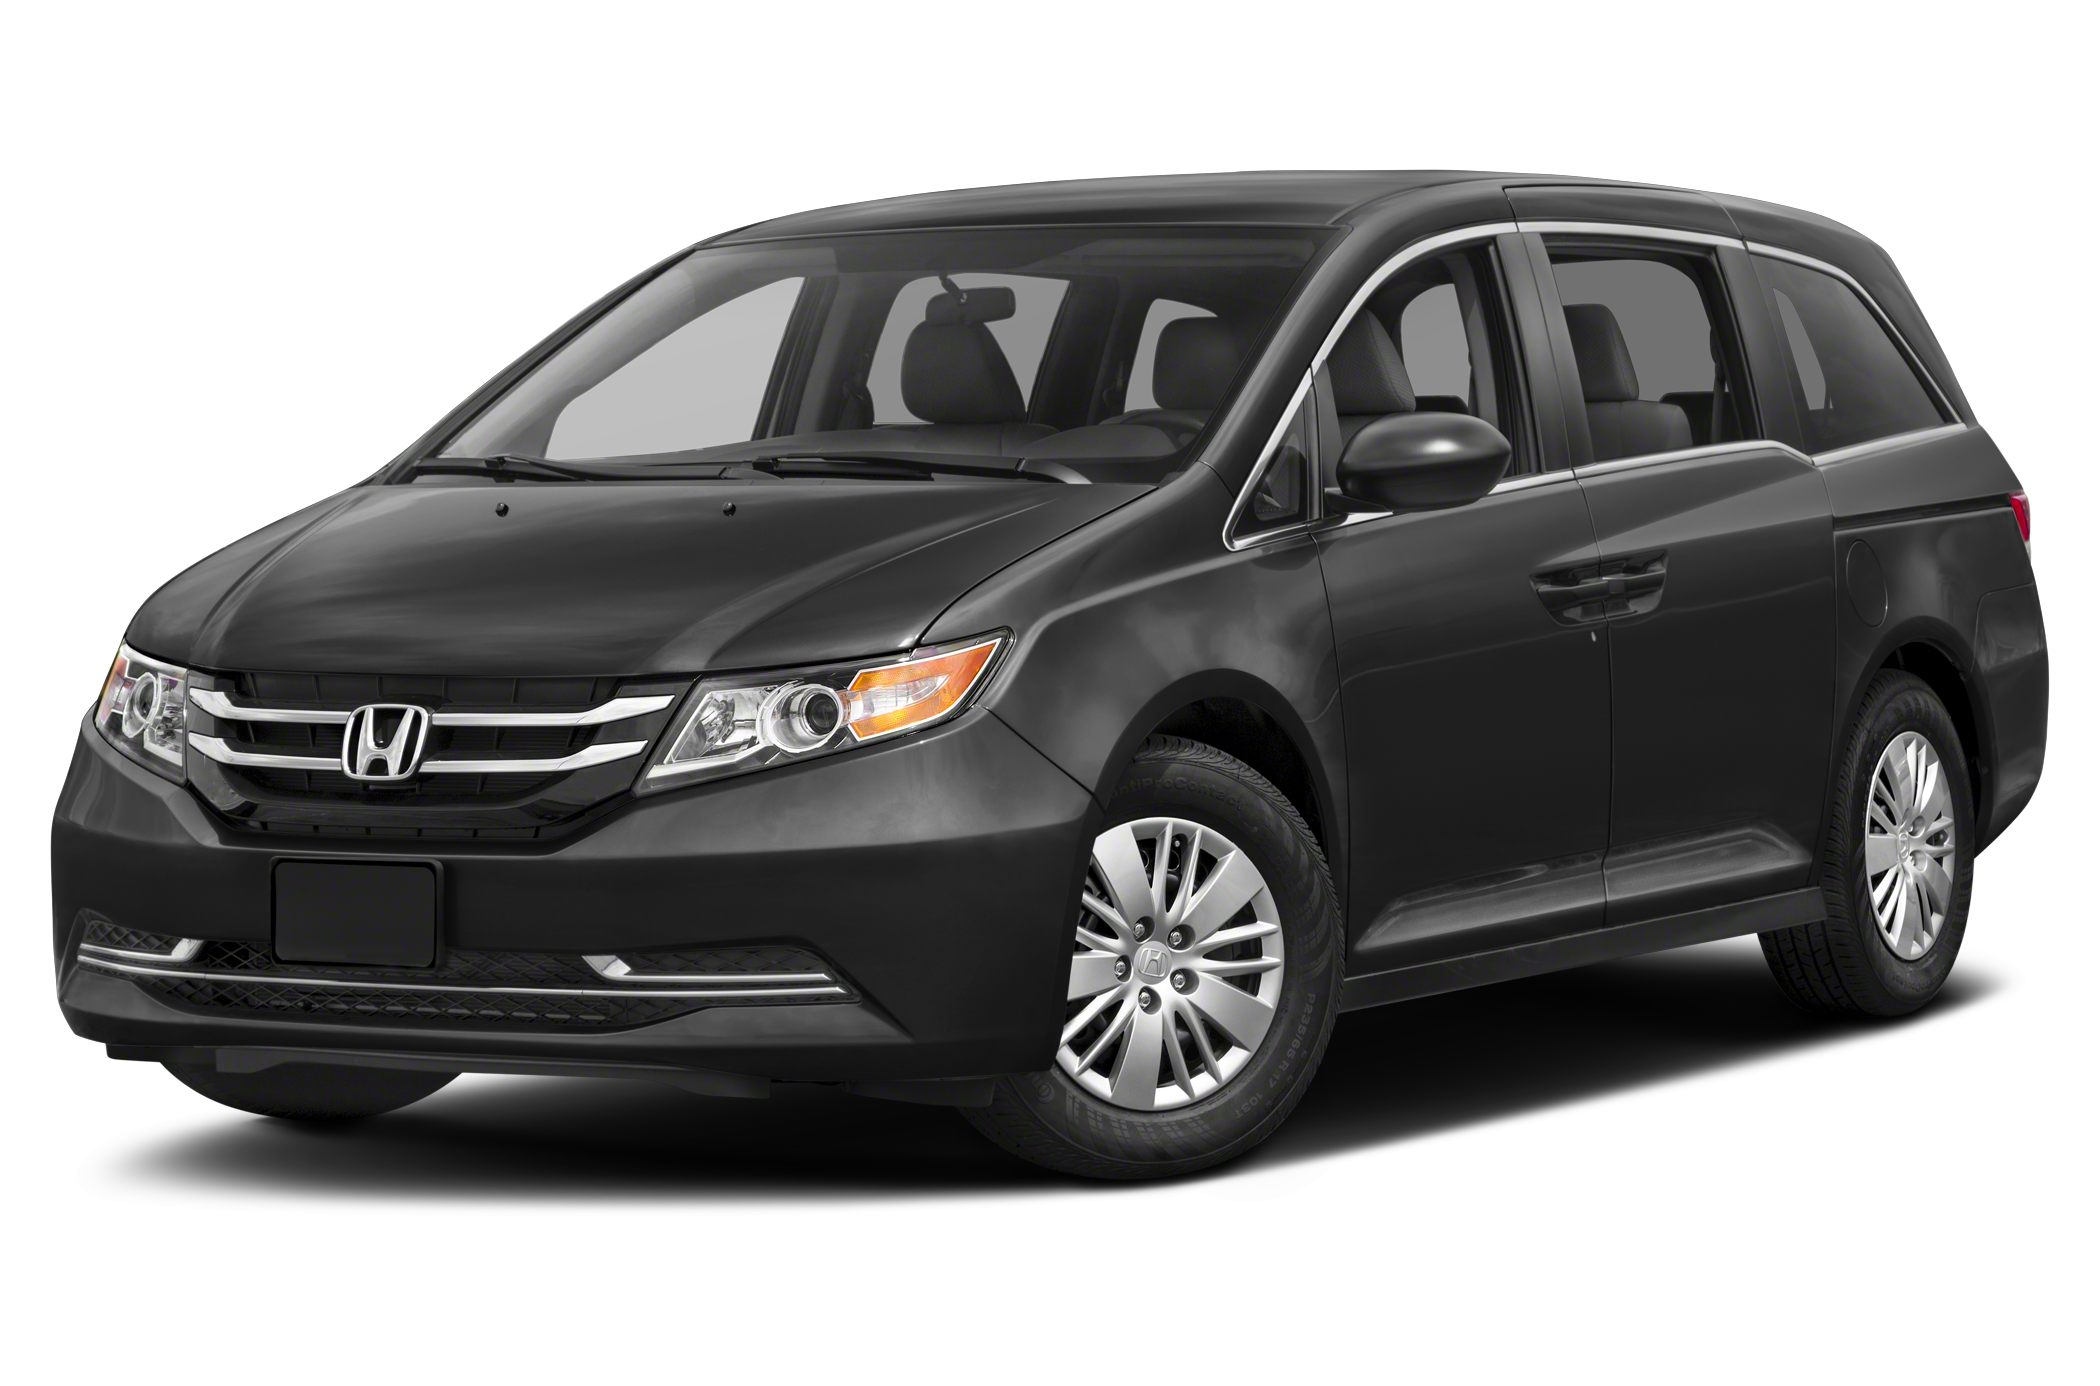 2017 Honda Odyssey Pricing And Specs